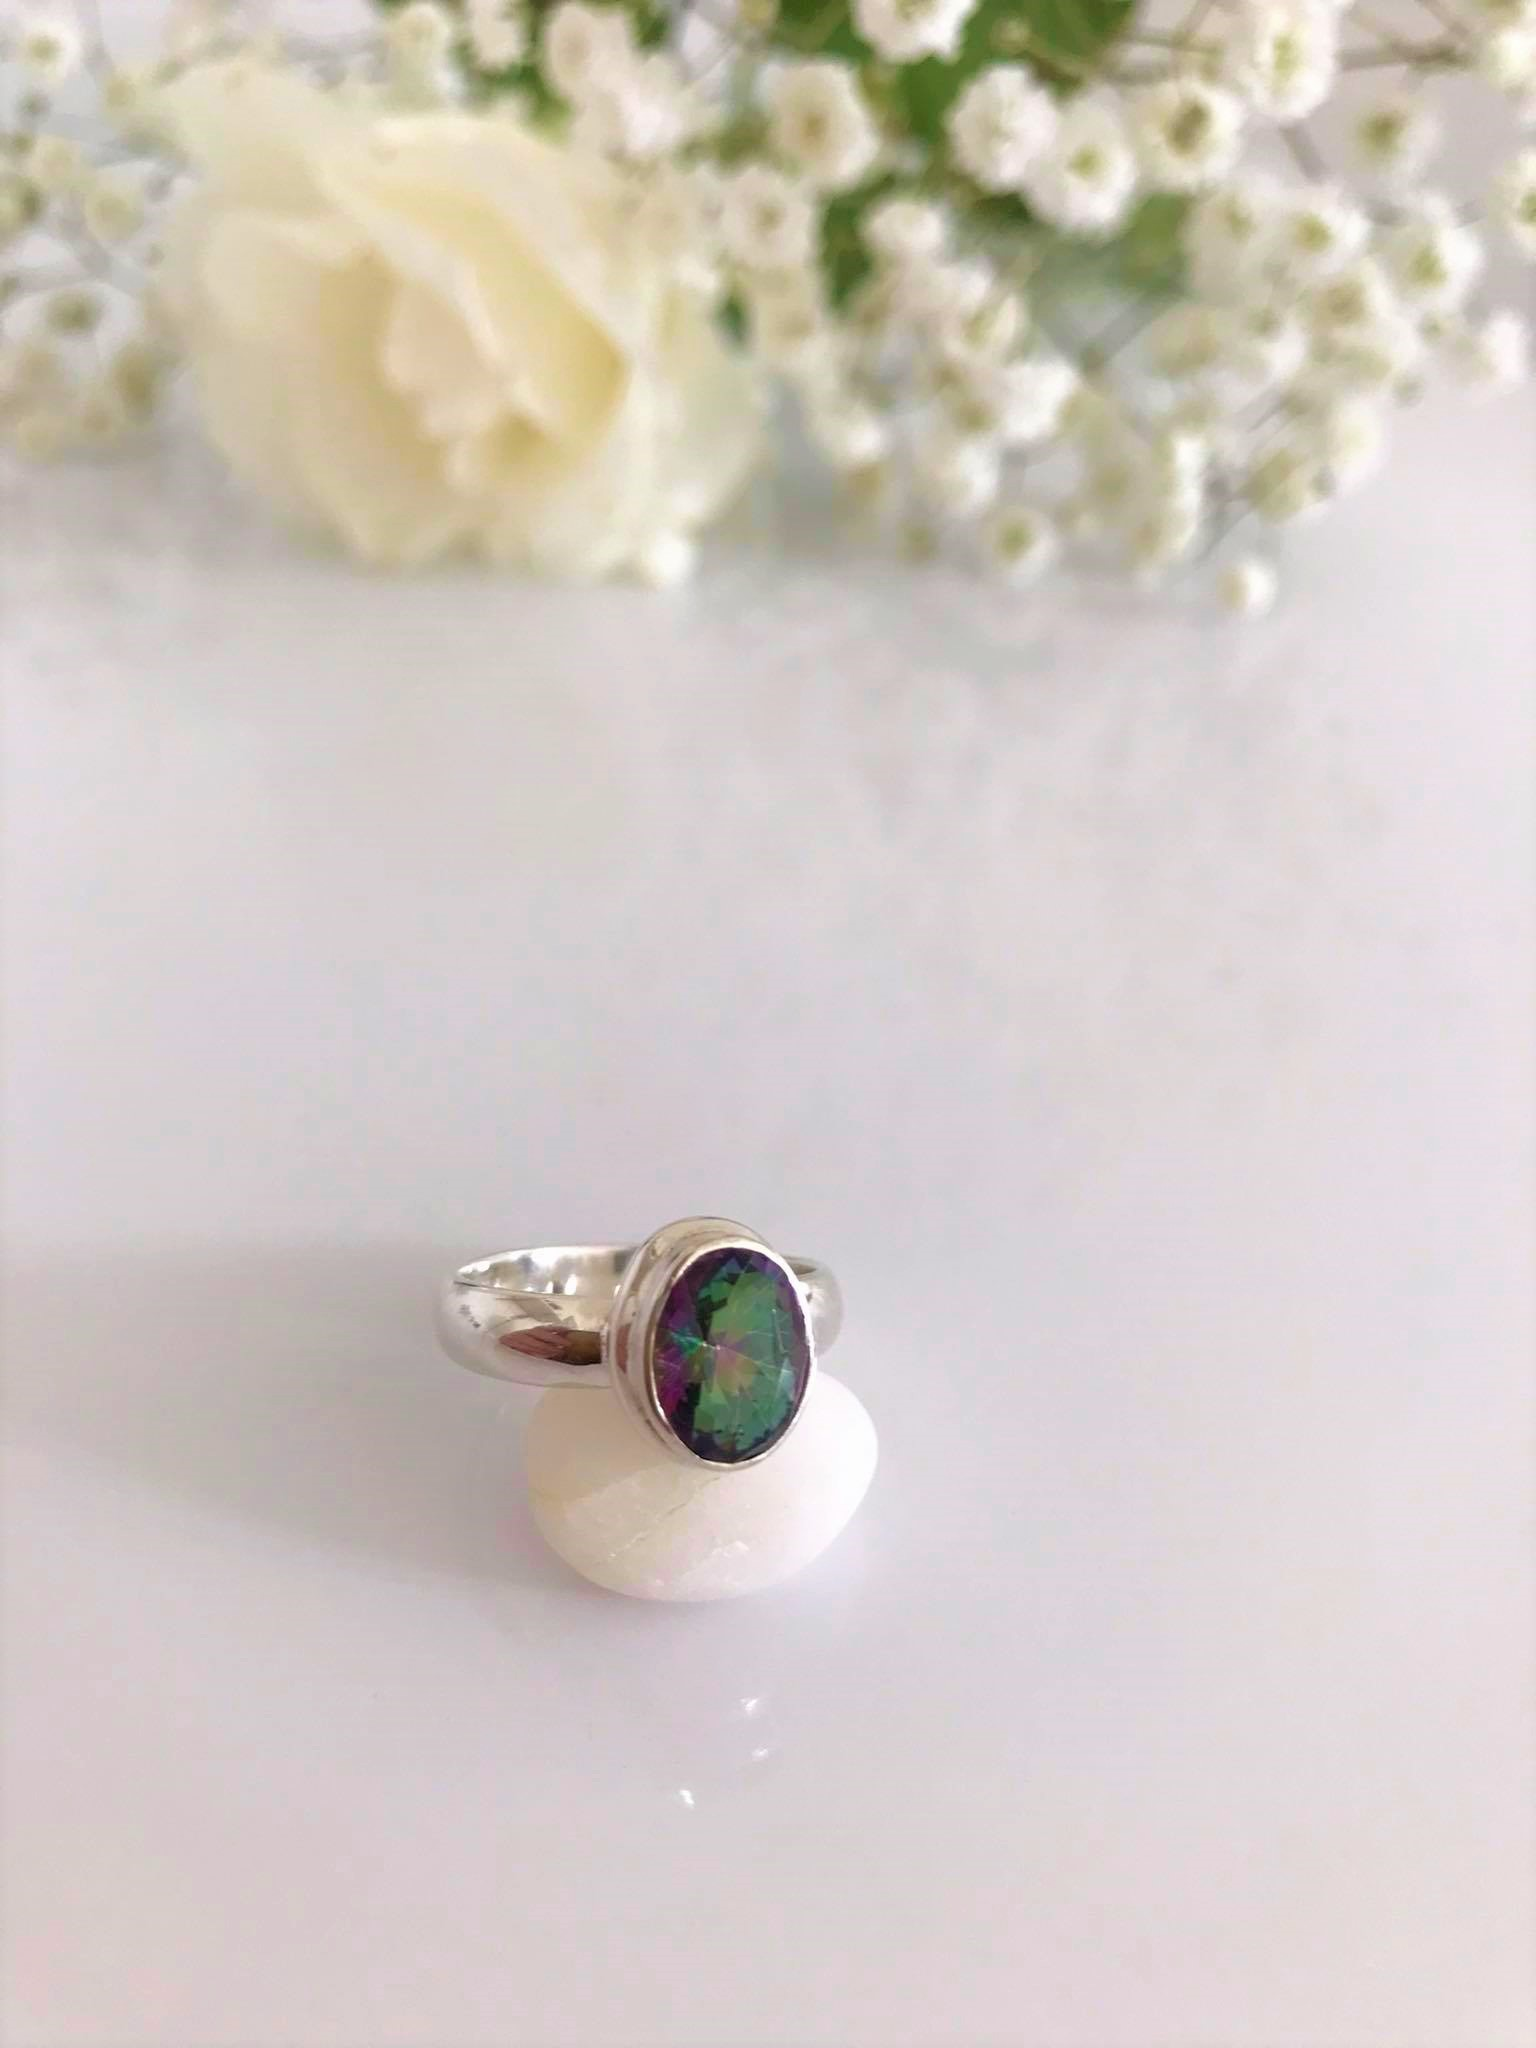 Faceted Mystic Topaz set in Silver Ring  Image